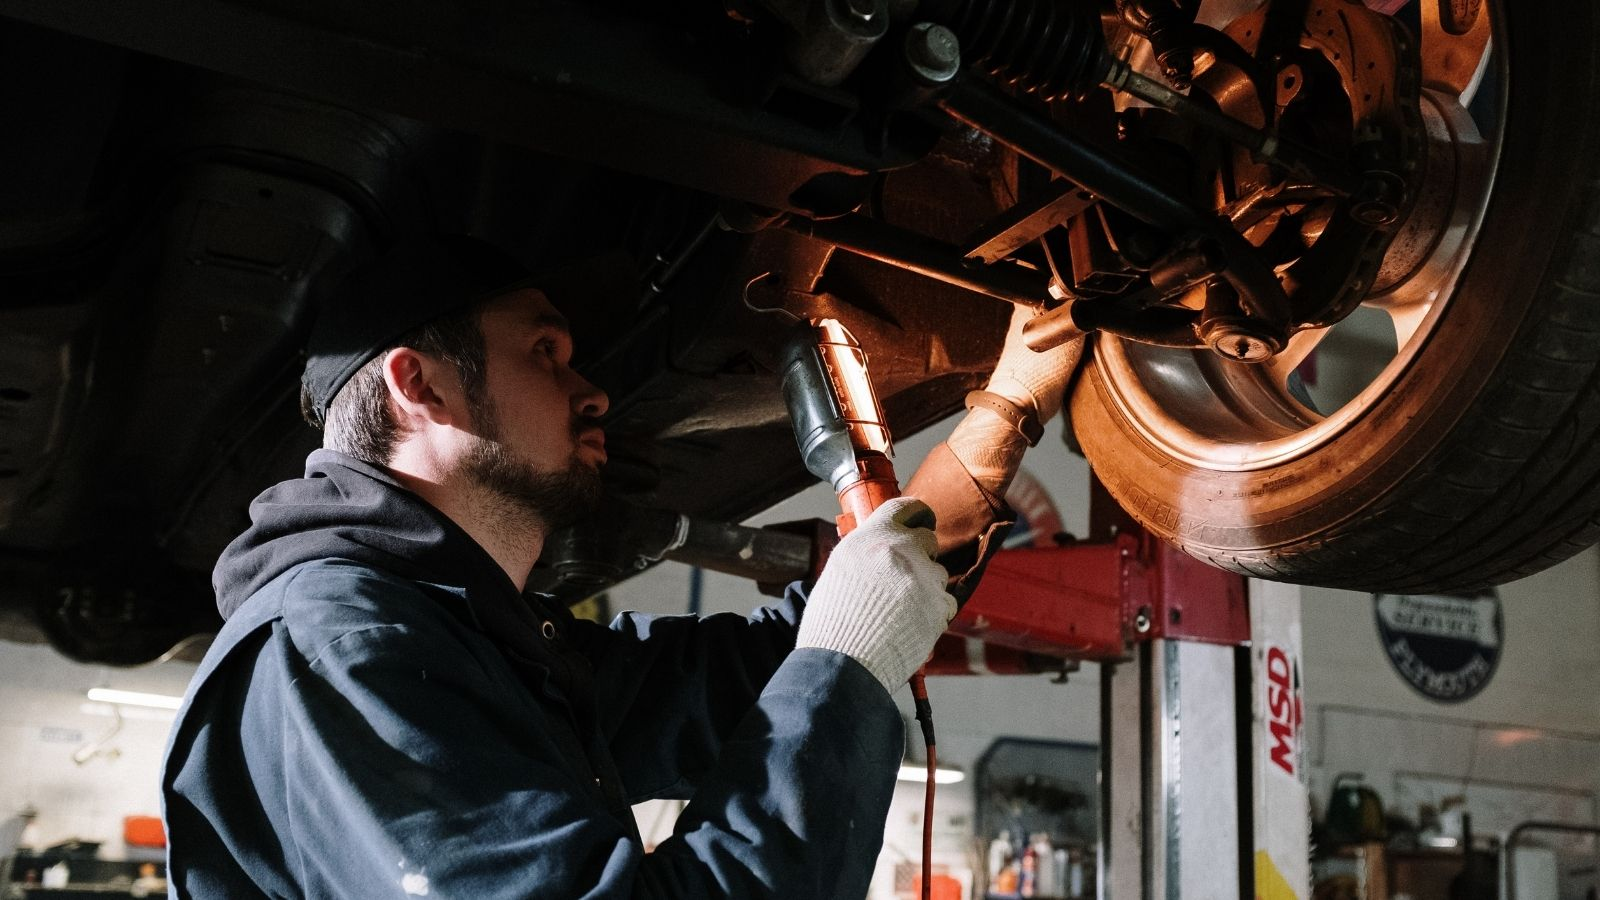 Train tire shop techs to look at the wheel and thoroughly inspect it